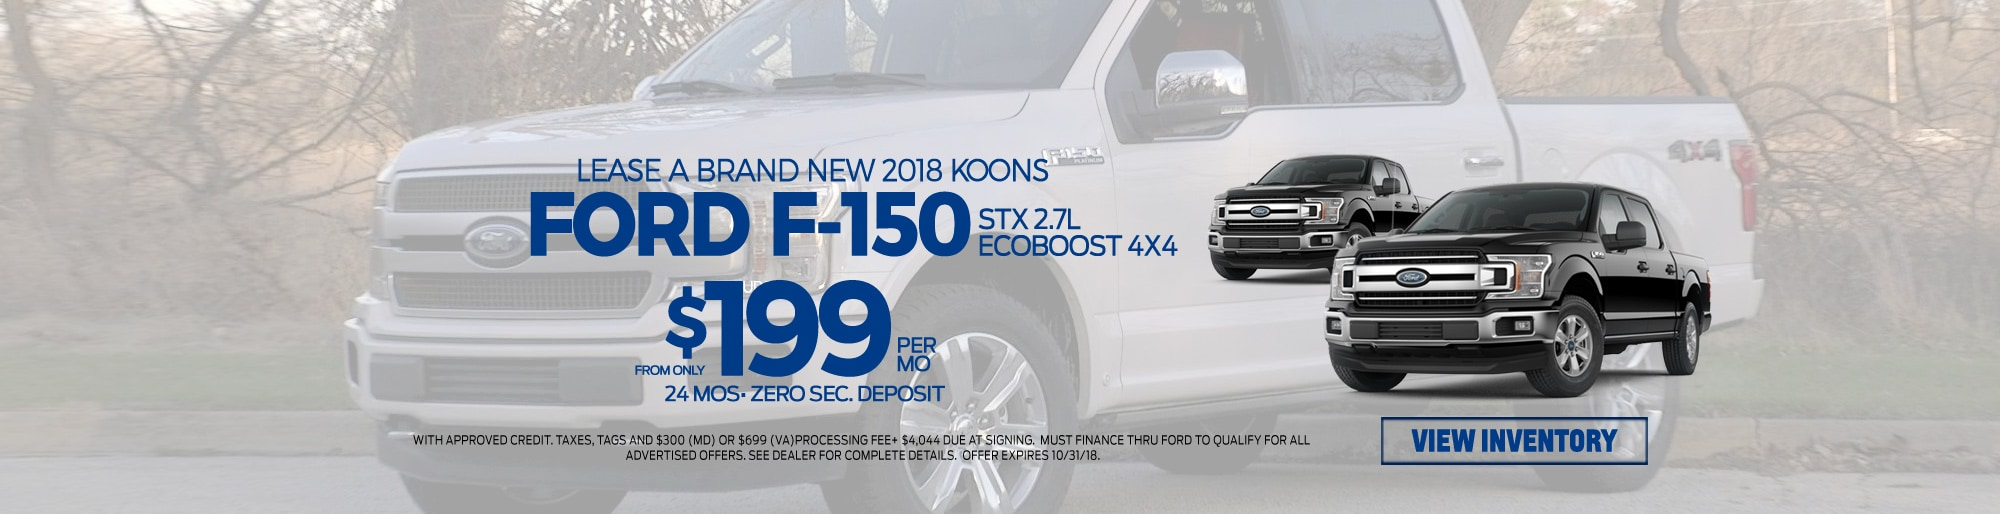 KOONS New Used Car Dealers In Maryland Virginia Delaware - Koons ford annapolis car show